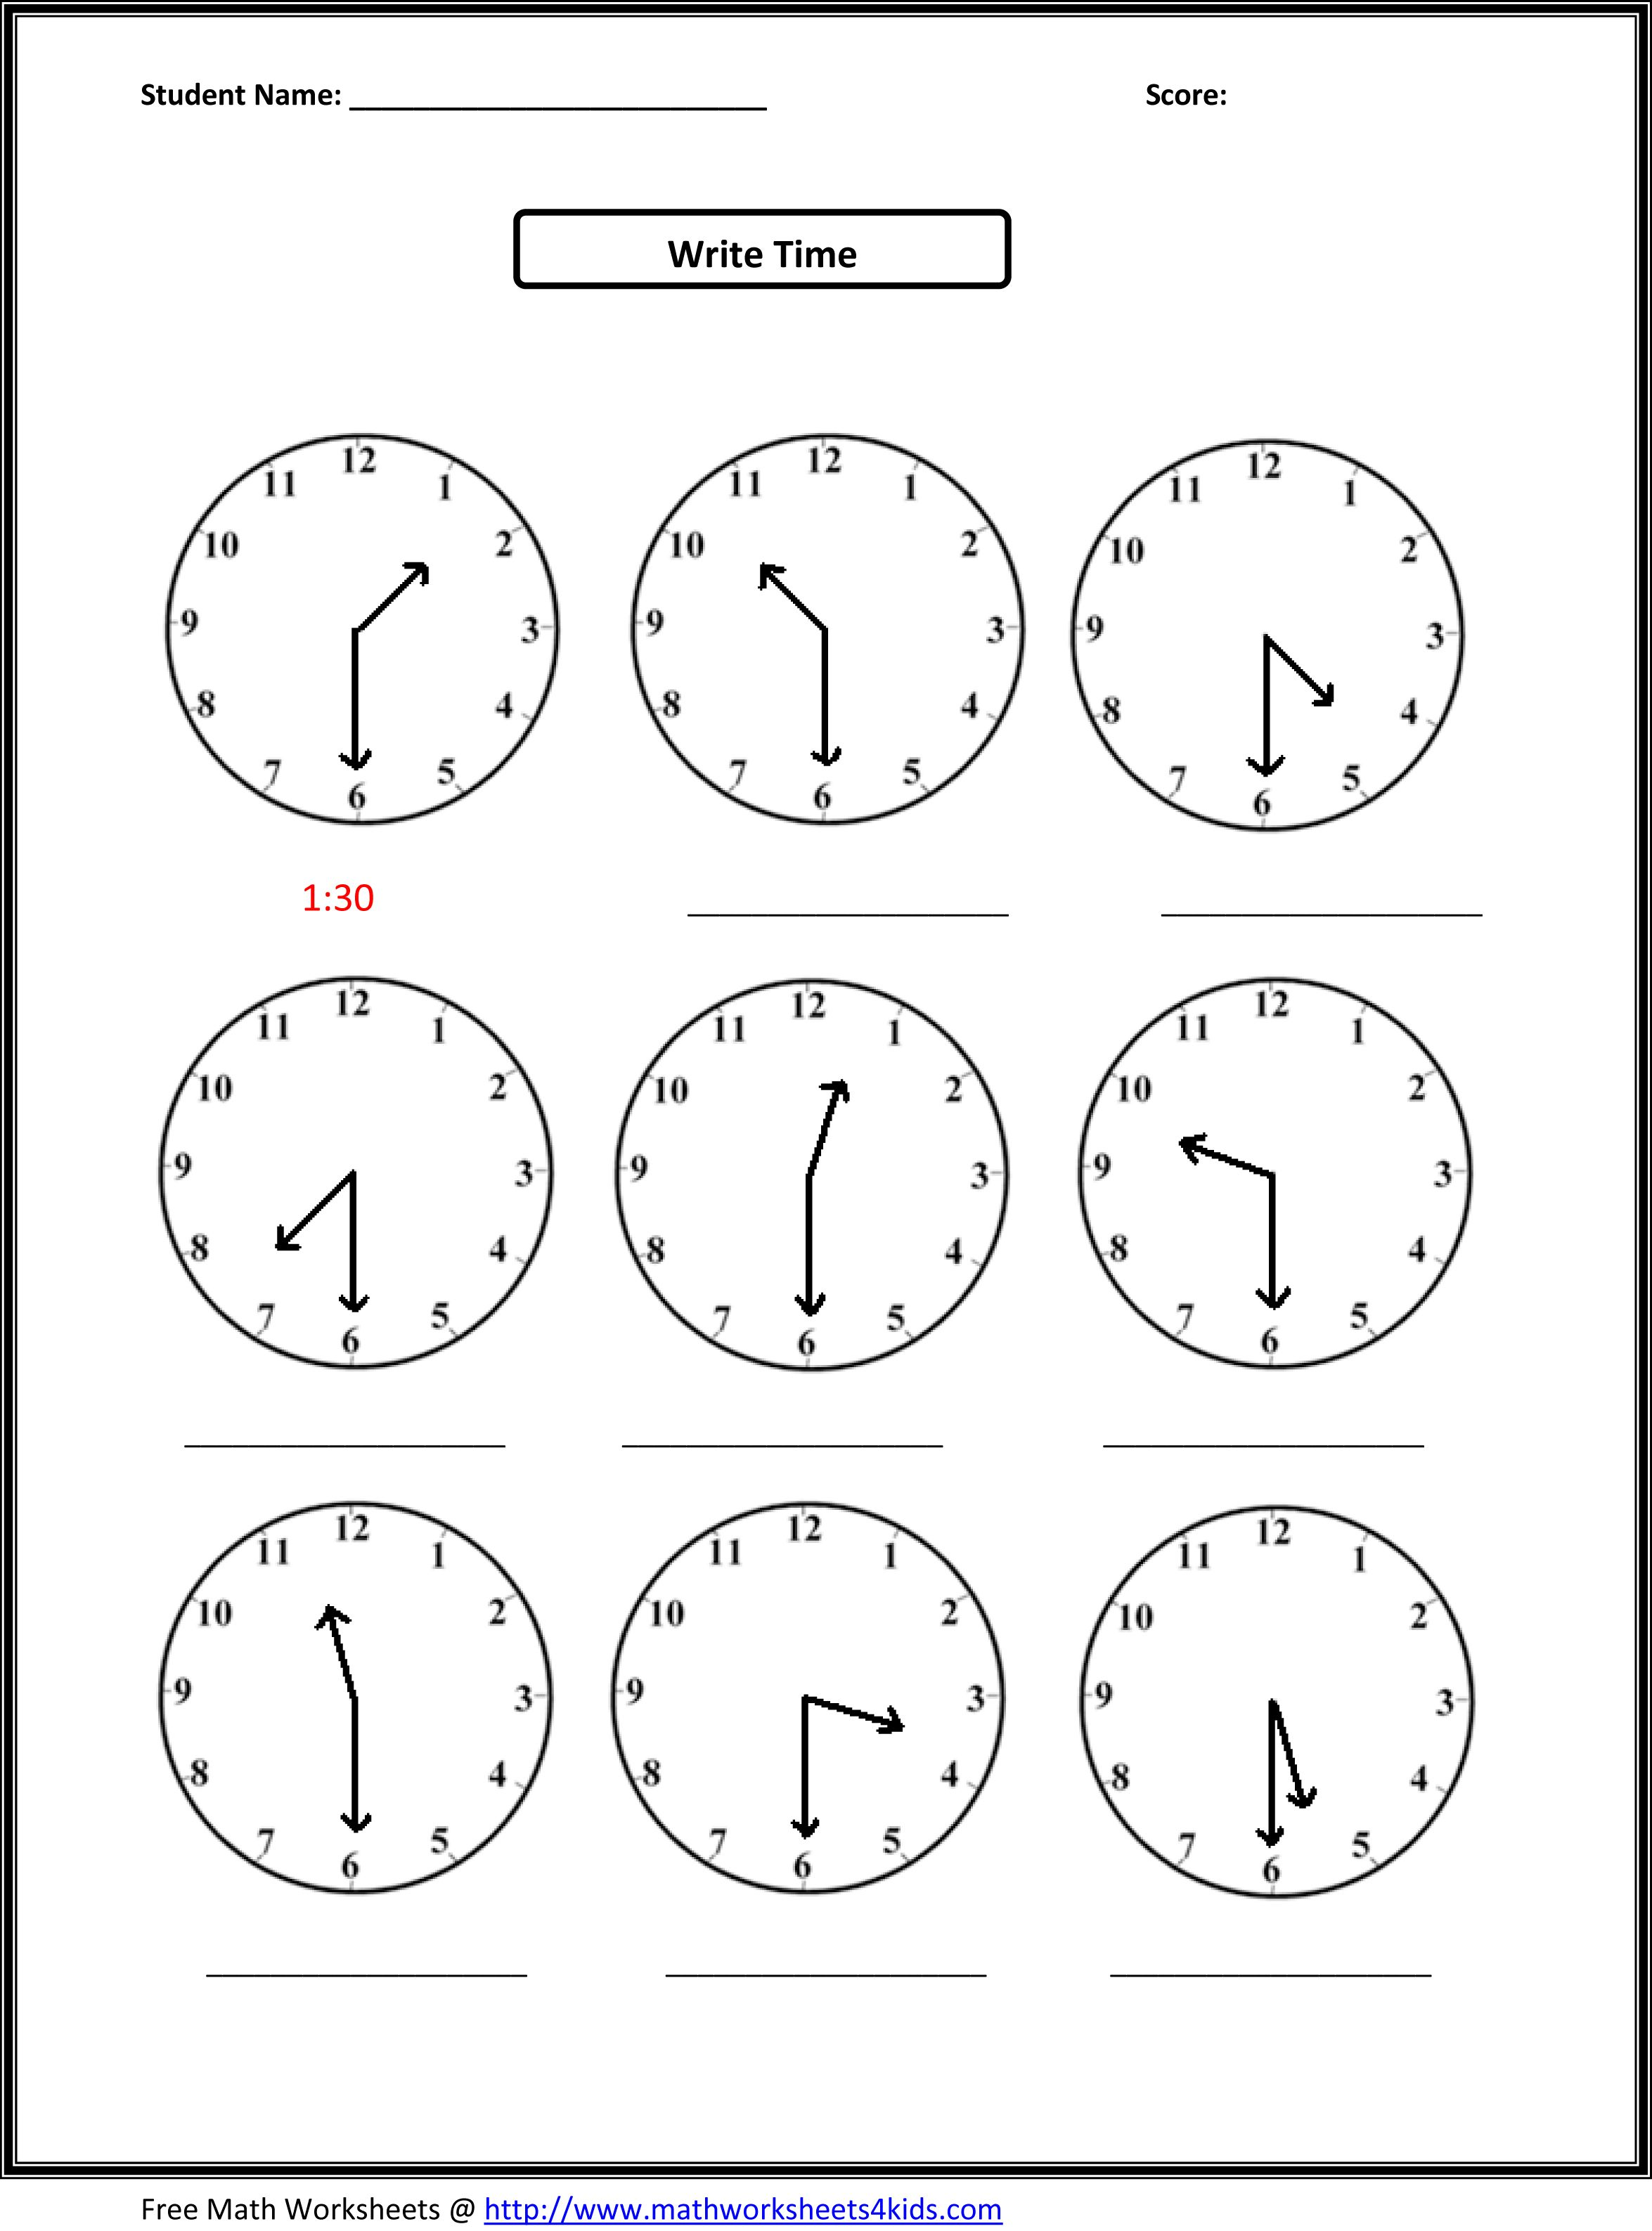 Weirdmailus  Prepossessing Worksheet On Time For Grade   Reocurent With Likable Free Printable Telling Time Worksheets Nd Grade  Reocurent With Attractive Clock Worksheet Also Surface Area Of A Rectangular Prism Worksheet In Addition Periodic Trends Practice Worksheet Answers And Ratio Worksheet Pdf As Well As Math Worksheets For First Grade Additionally Two Way Frequency Table Worksheet From Reocurentcom With Weirdmailus  Likable Worksheet On Time For Grade   Reocurent With Attractive Free Printable Telling Time Worksheets Nd Grade  Reocurent And Prepossessing Clock Worksheet Also Surface Area Of A Rectangular Prism Worksheet In Addition Periodic Trends Practice Worksheet Answers From Reocurentcom